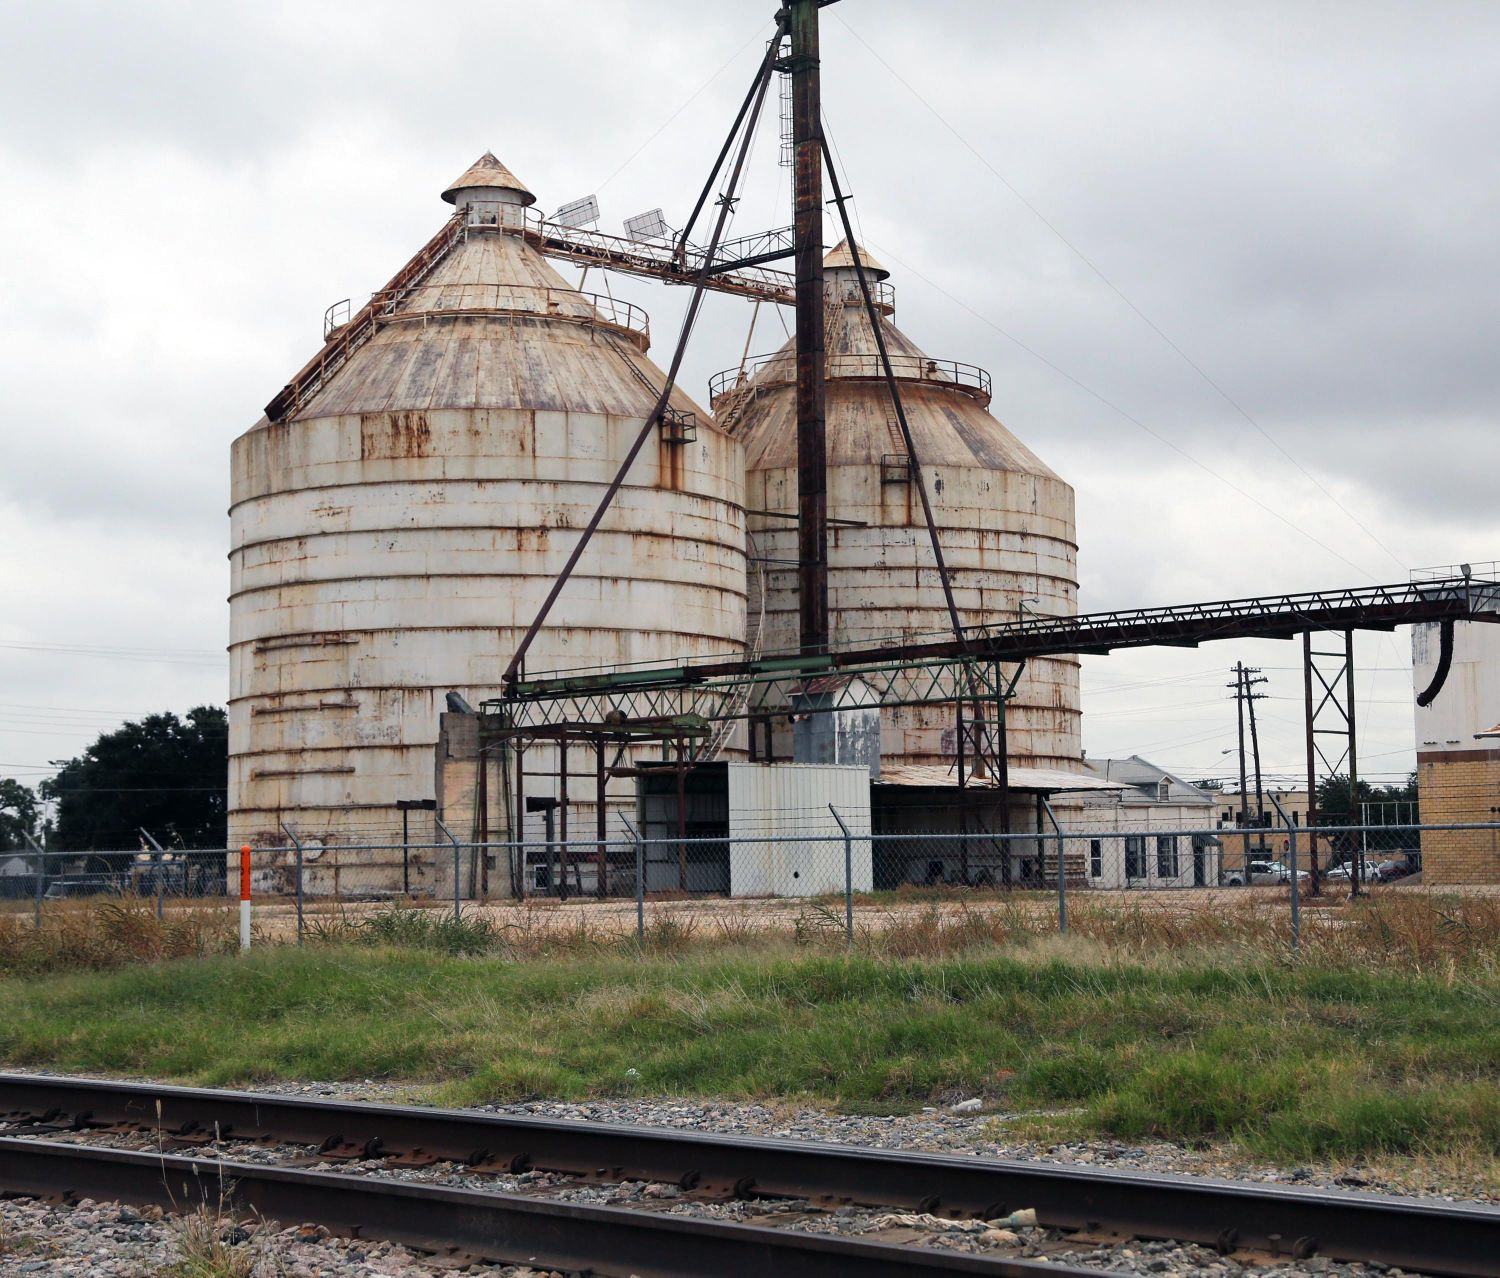 hgtv fixer upper stars see downtown waco silo project autos post. Black Bedroom Furniture Sets. Home Design Ideas